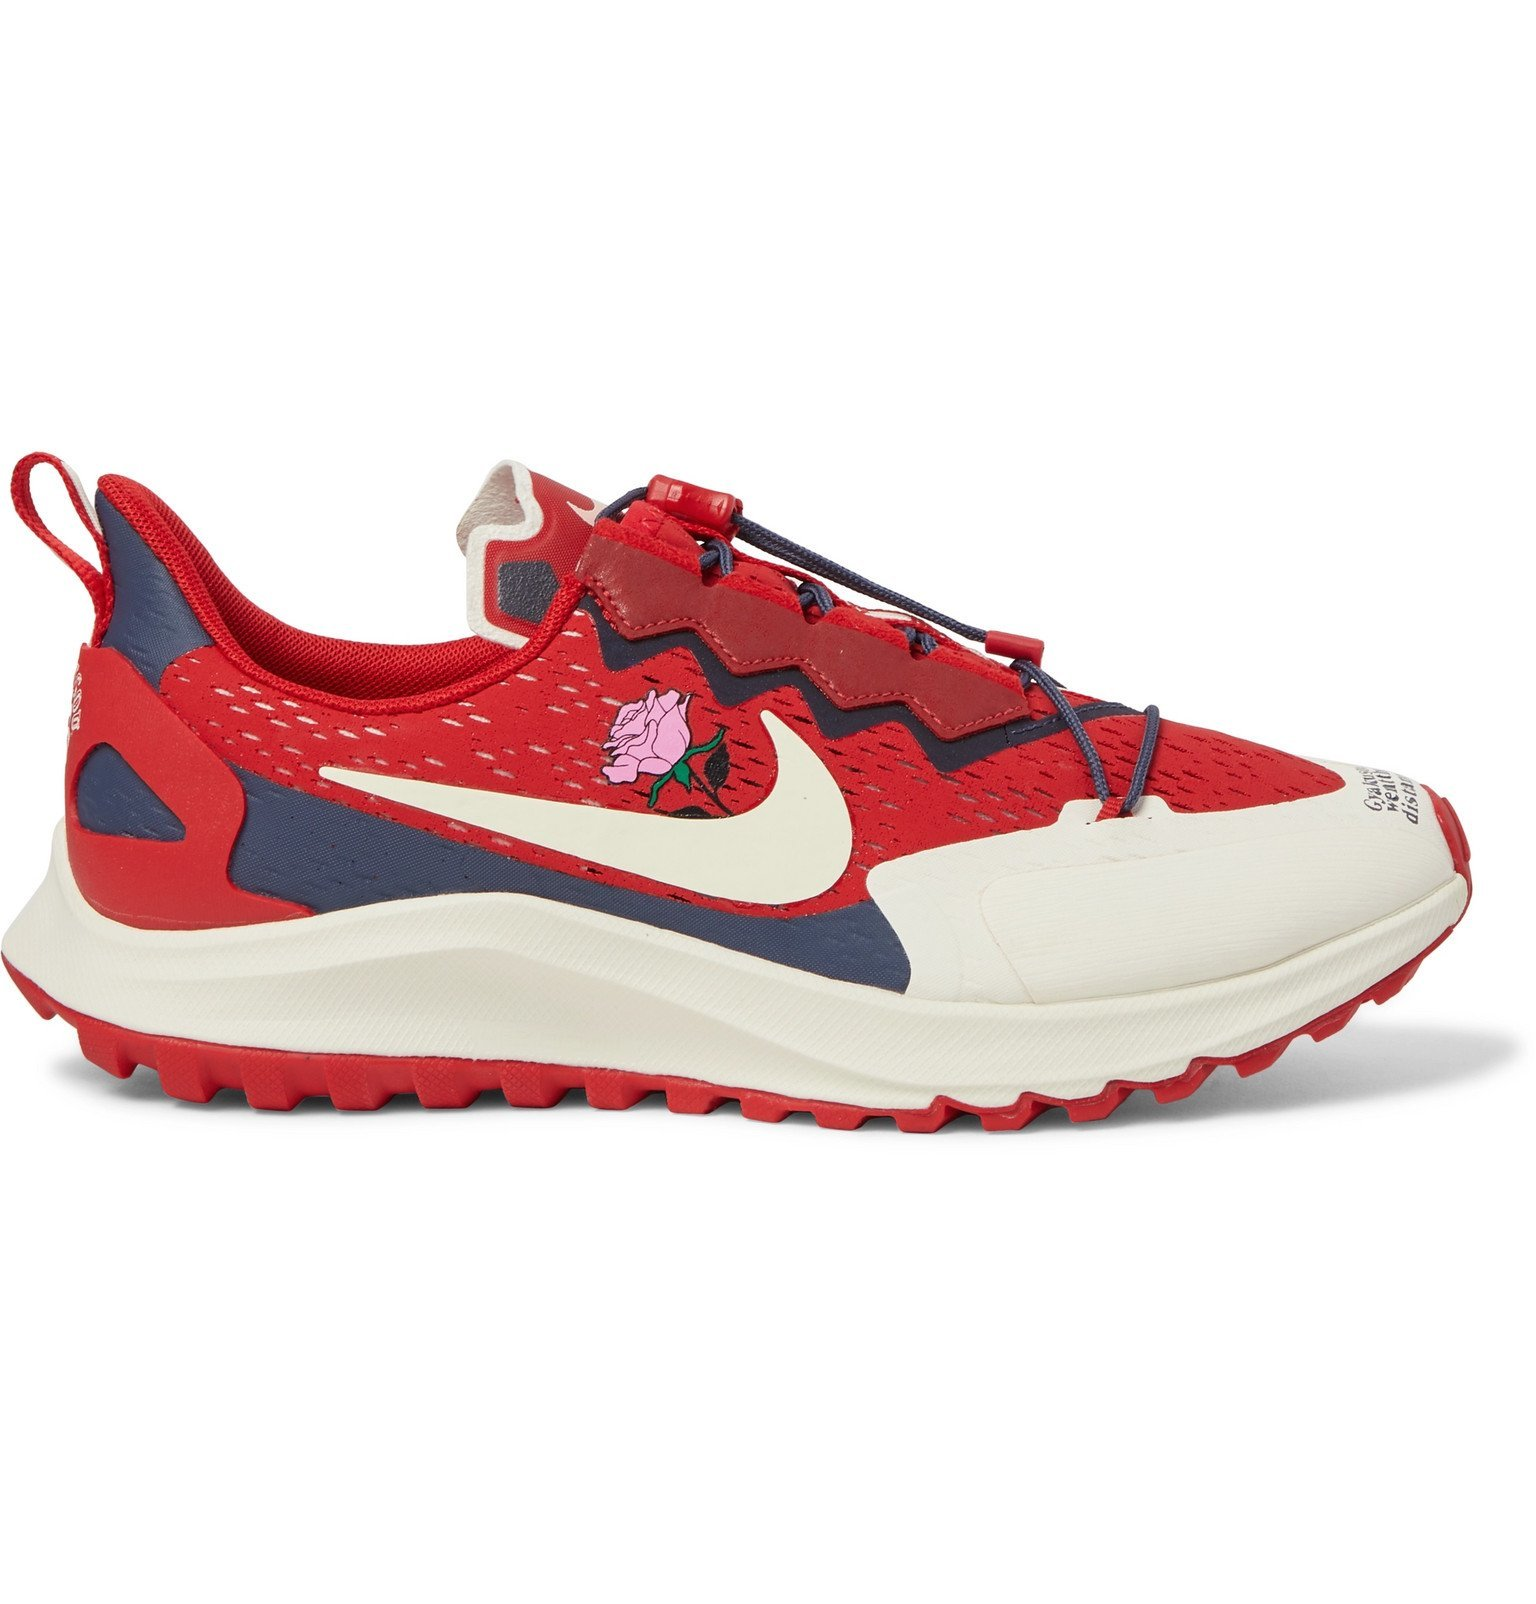 Photo: Nike x Undercover - Gyakusou Zoom Pegasus 36 Trail Suede-Trimmed Rubber and Mesh Running Sneakers - Red